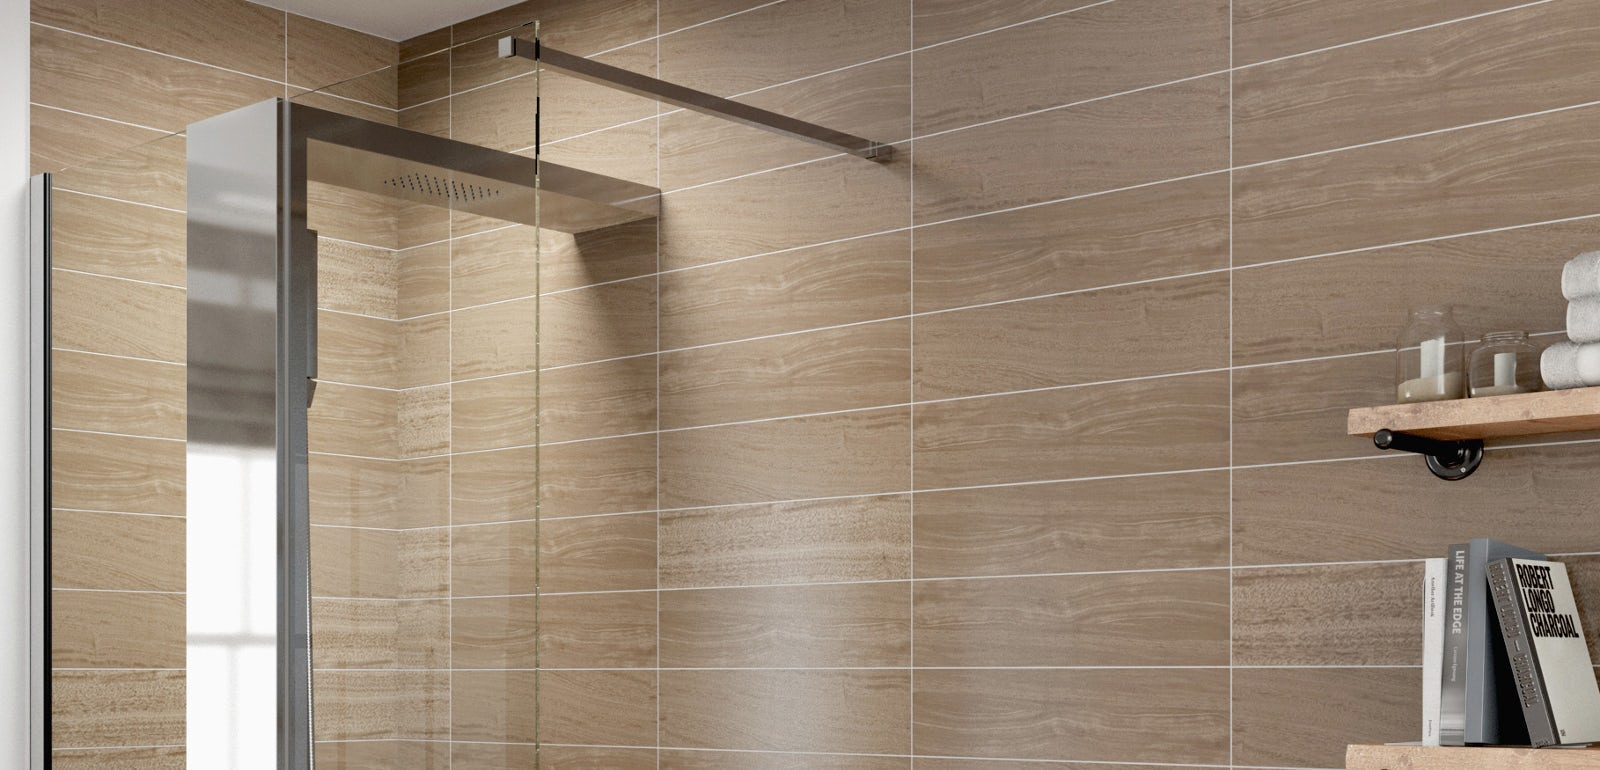 Make a Real Statement with a Walk in Shower or Wet Room